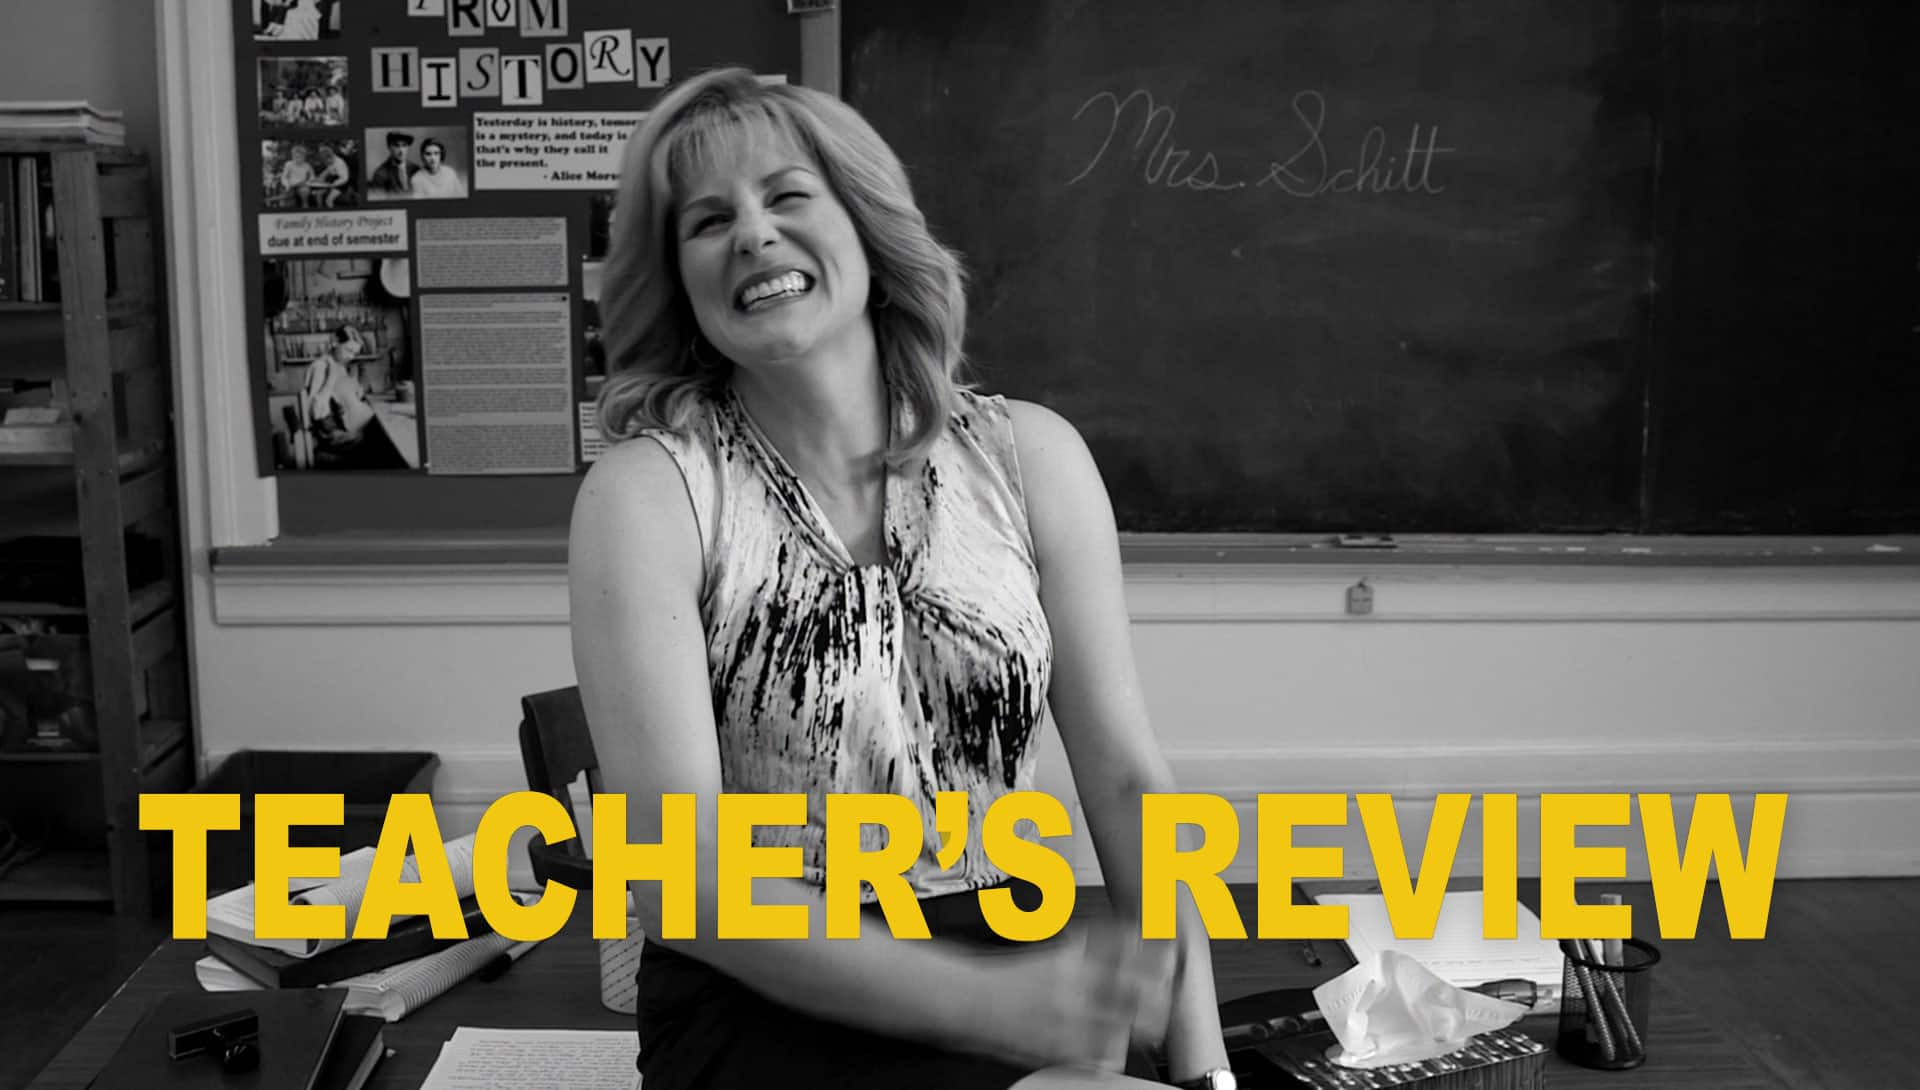 Teacher's Review